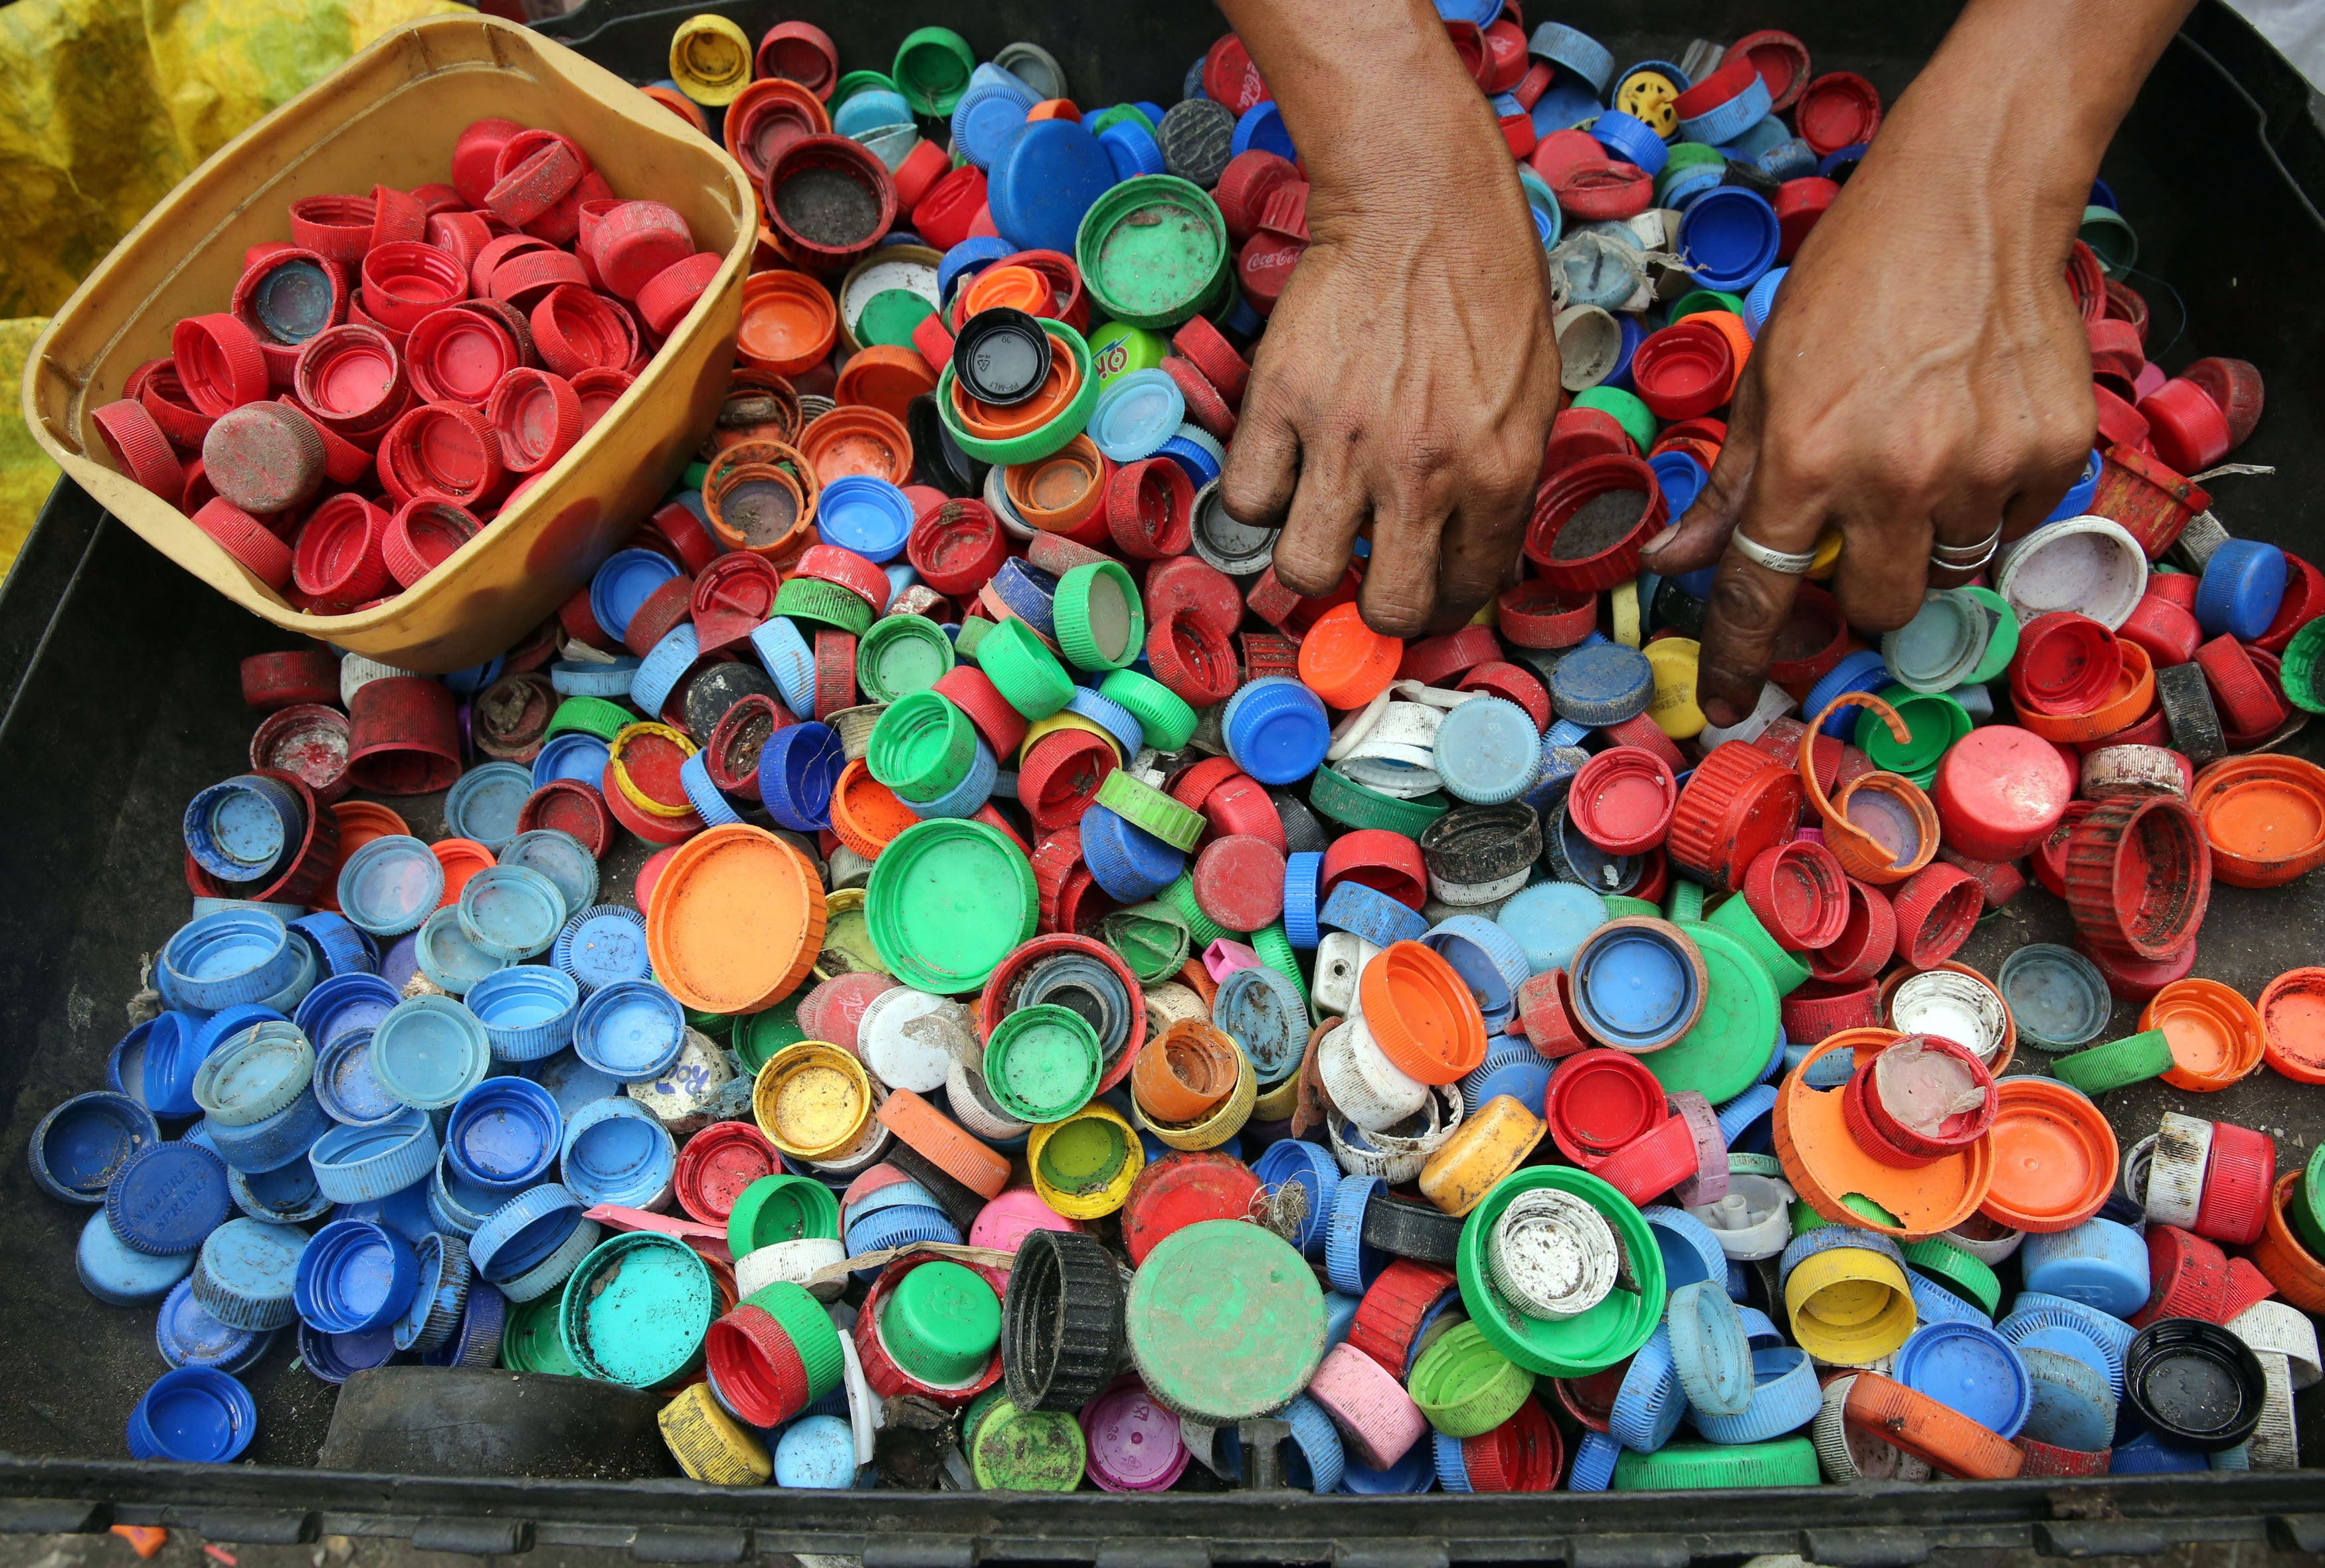 A man sorting through bottle and container caps which are one of the major contributors to plastic pollution